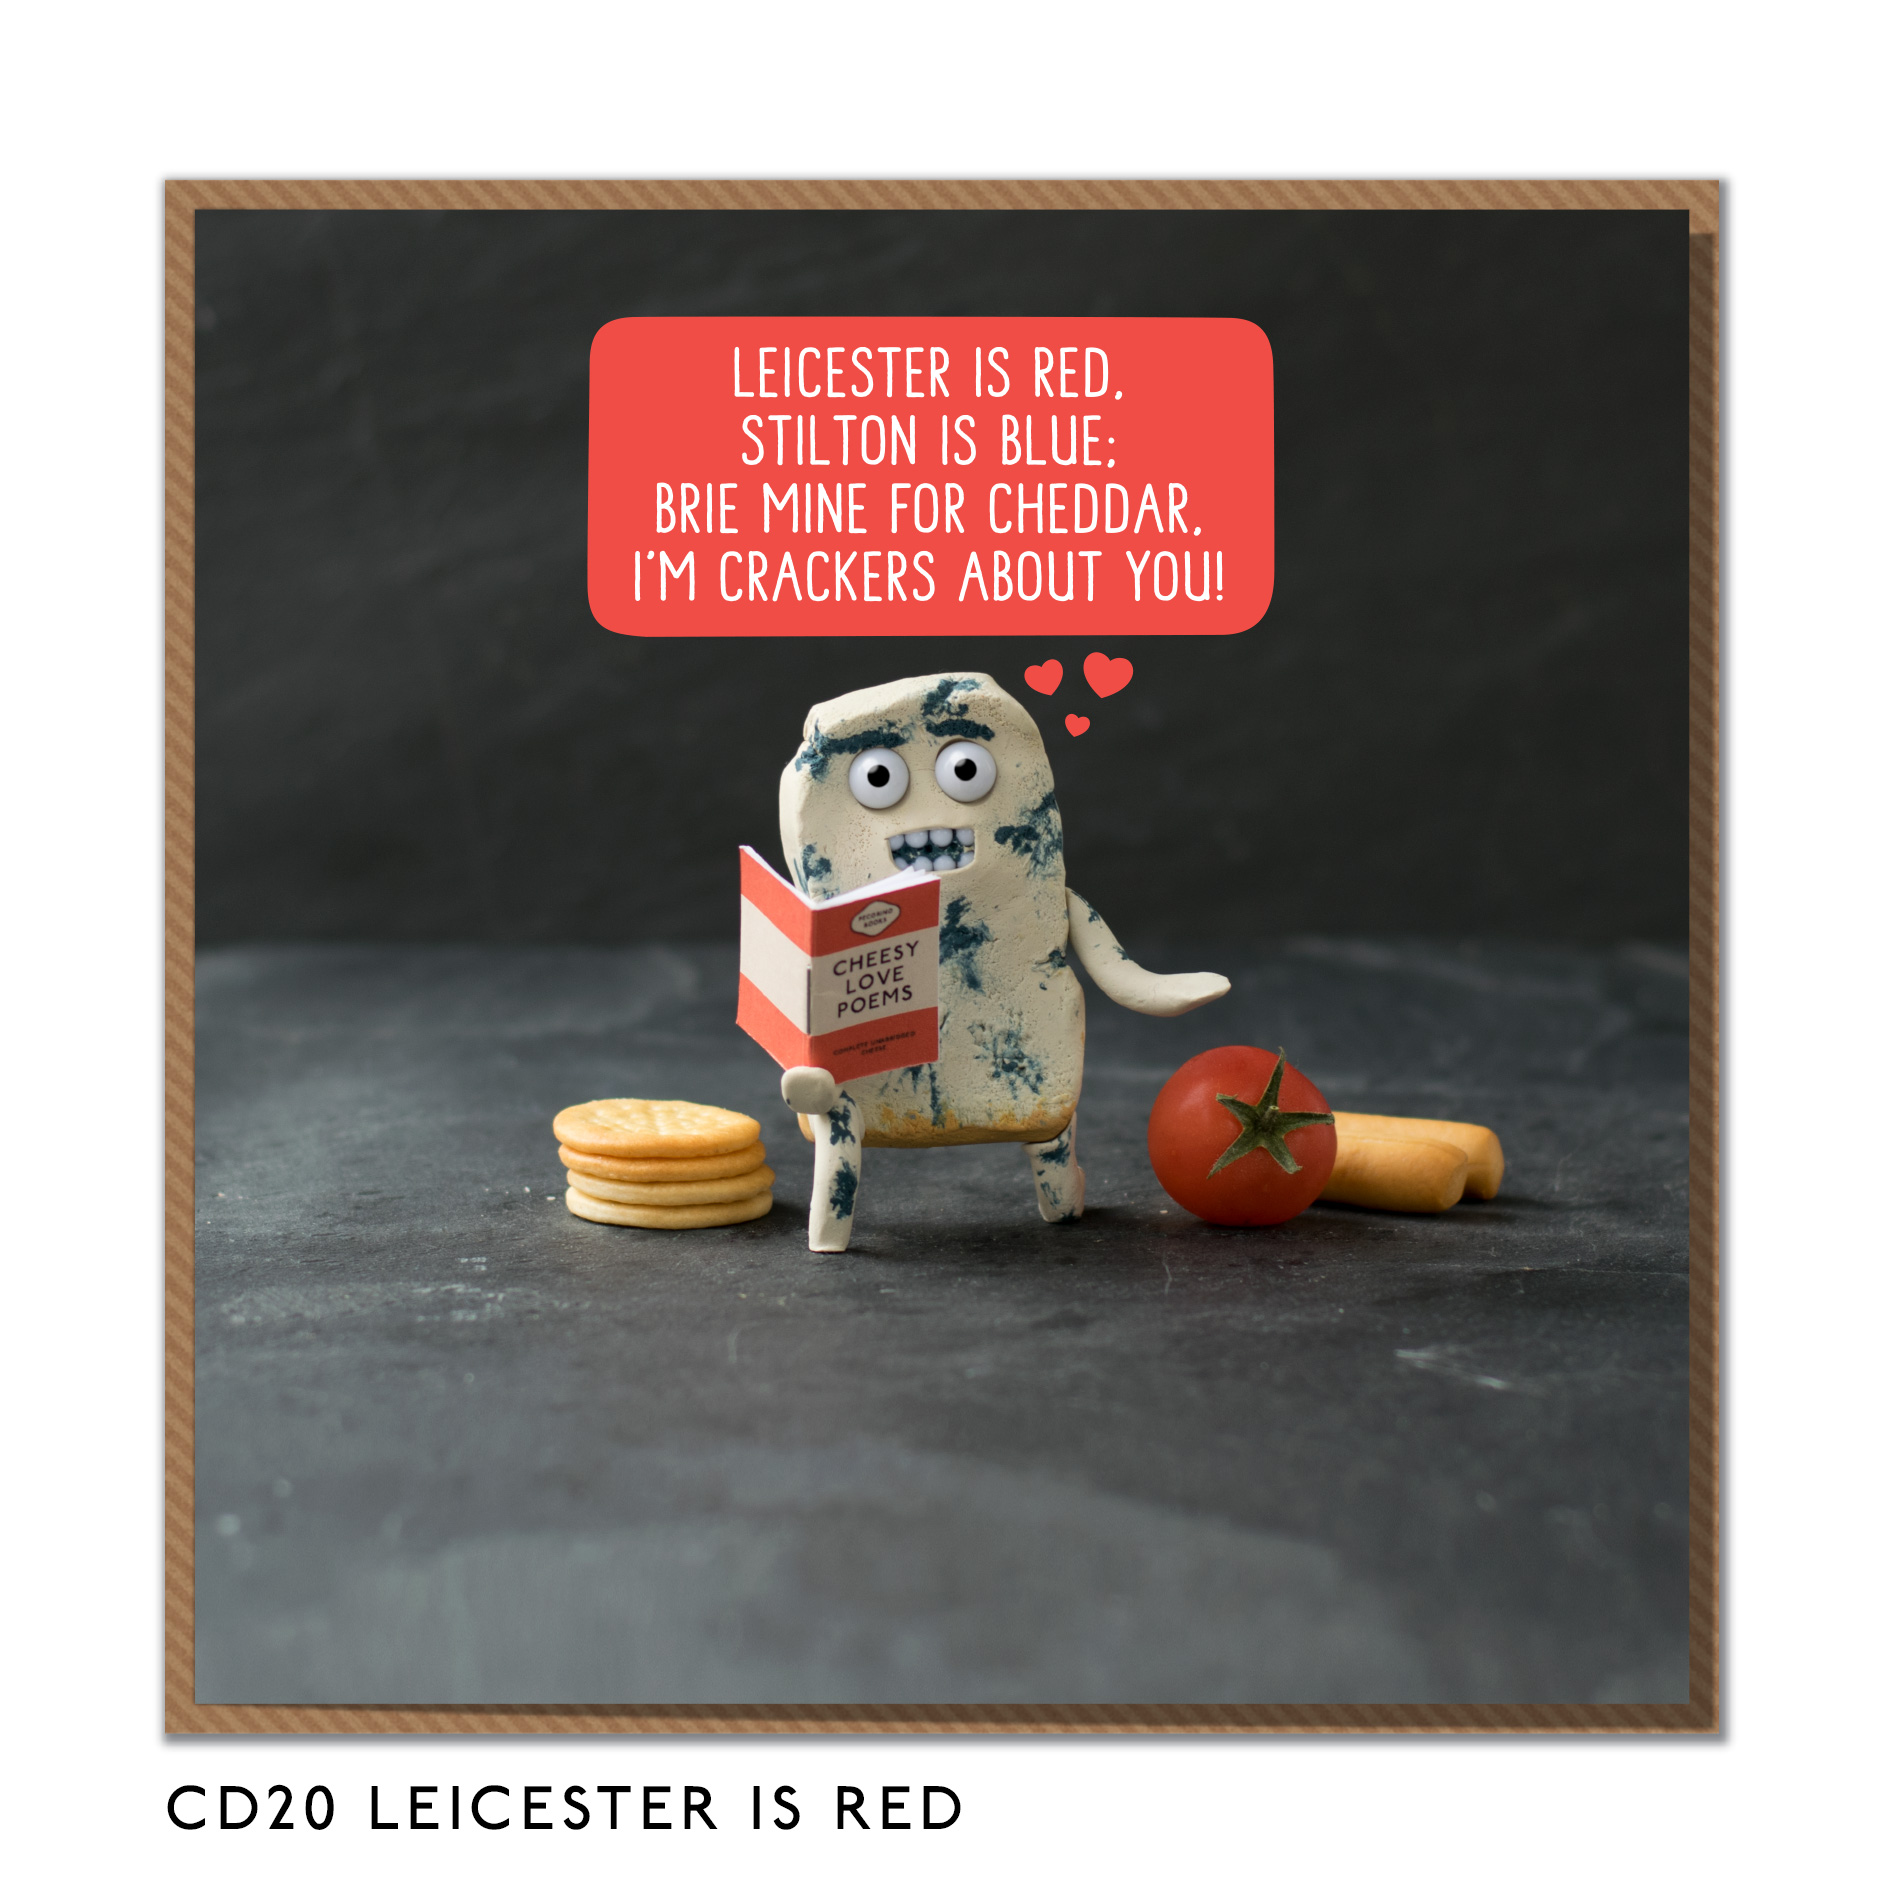 CD20-LEICESTER-IS-RED.jpg